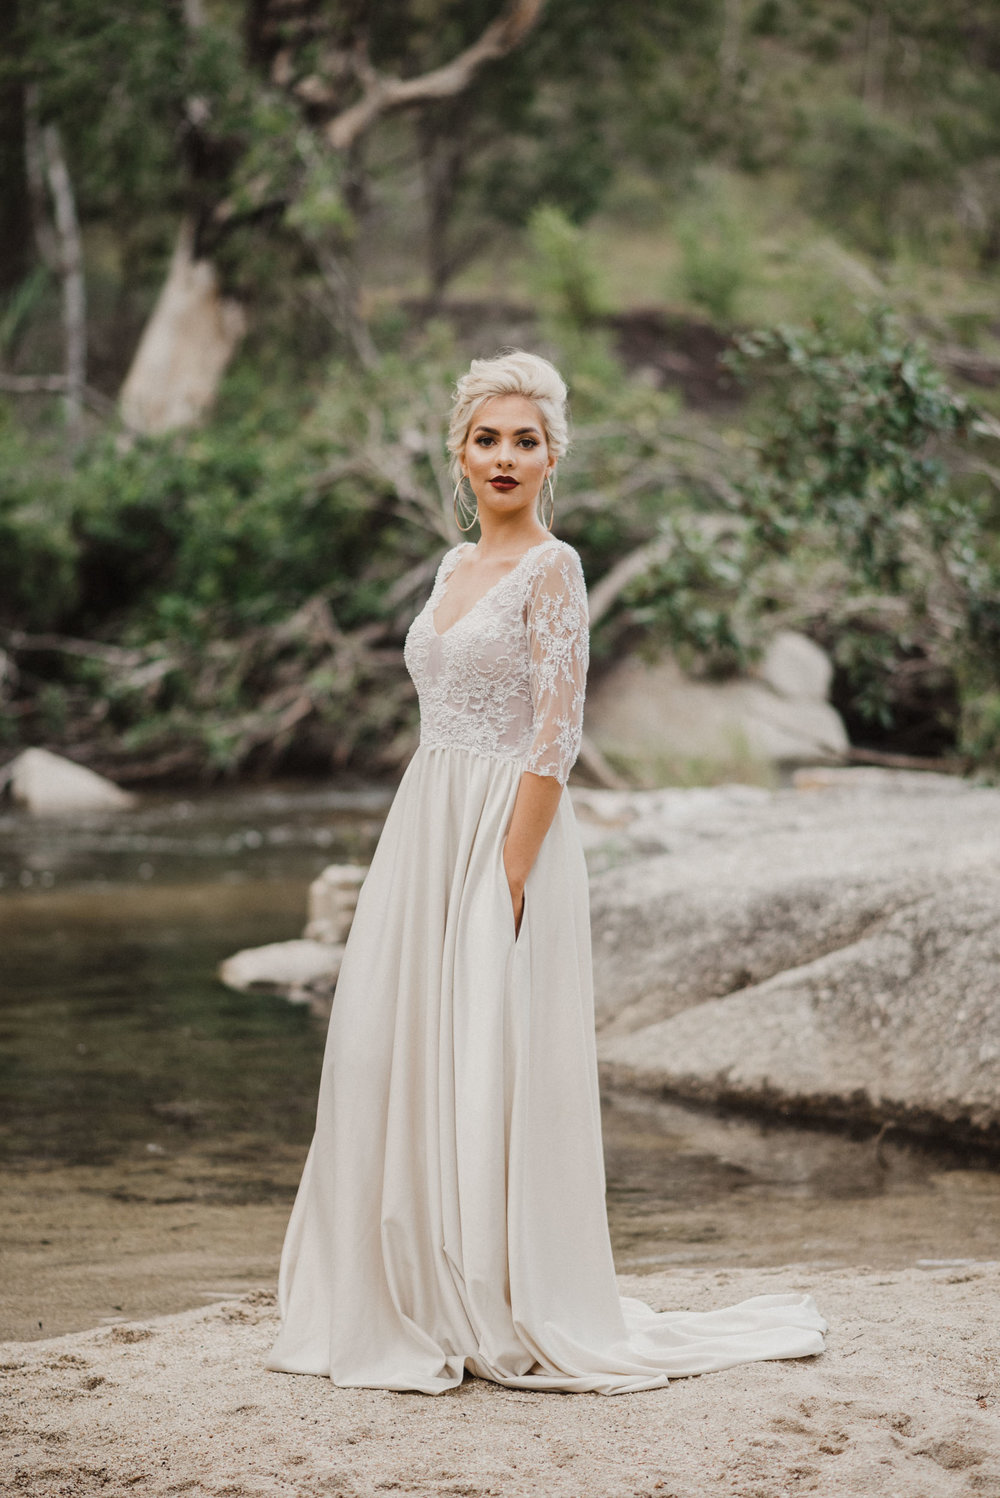 The Raw Photographer - Cairns Wedding Photographer - Brides Styled Shoot - Dress Jonovia Bridal - Hair Makeup Ideas-35.jpg